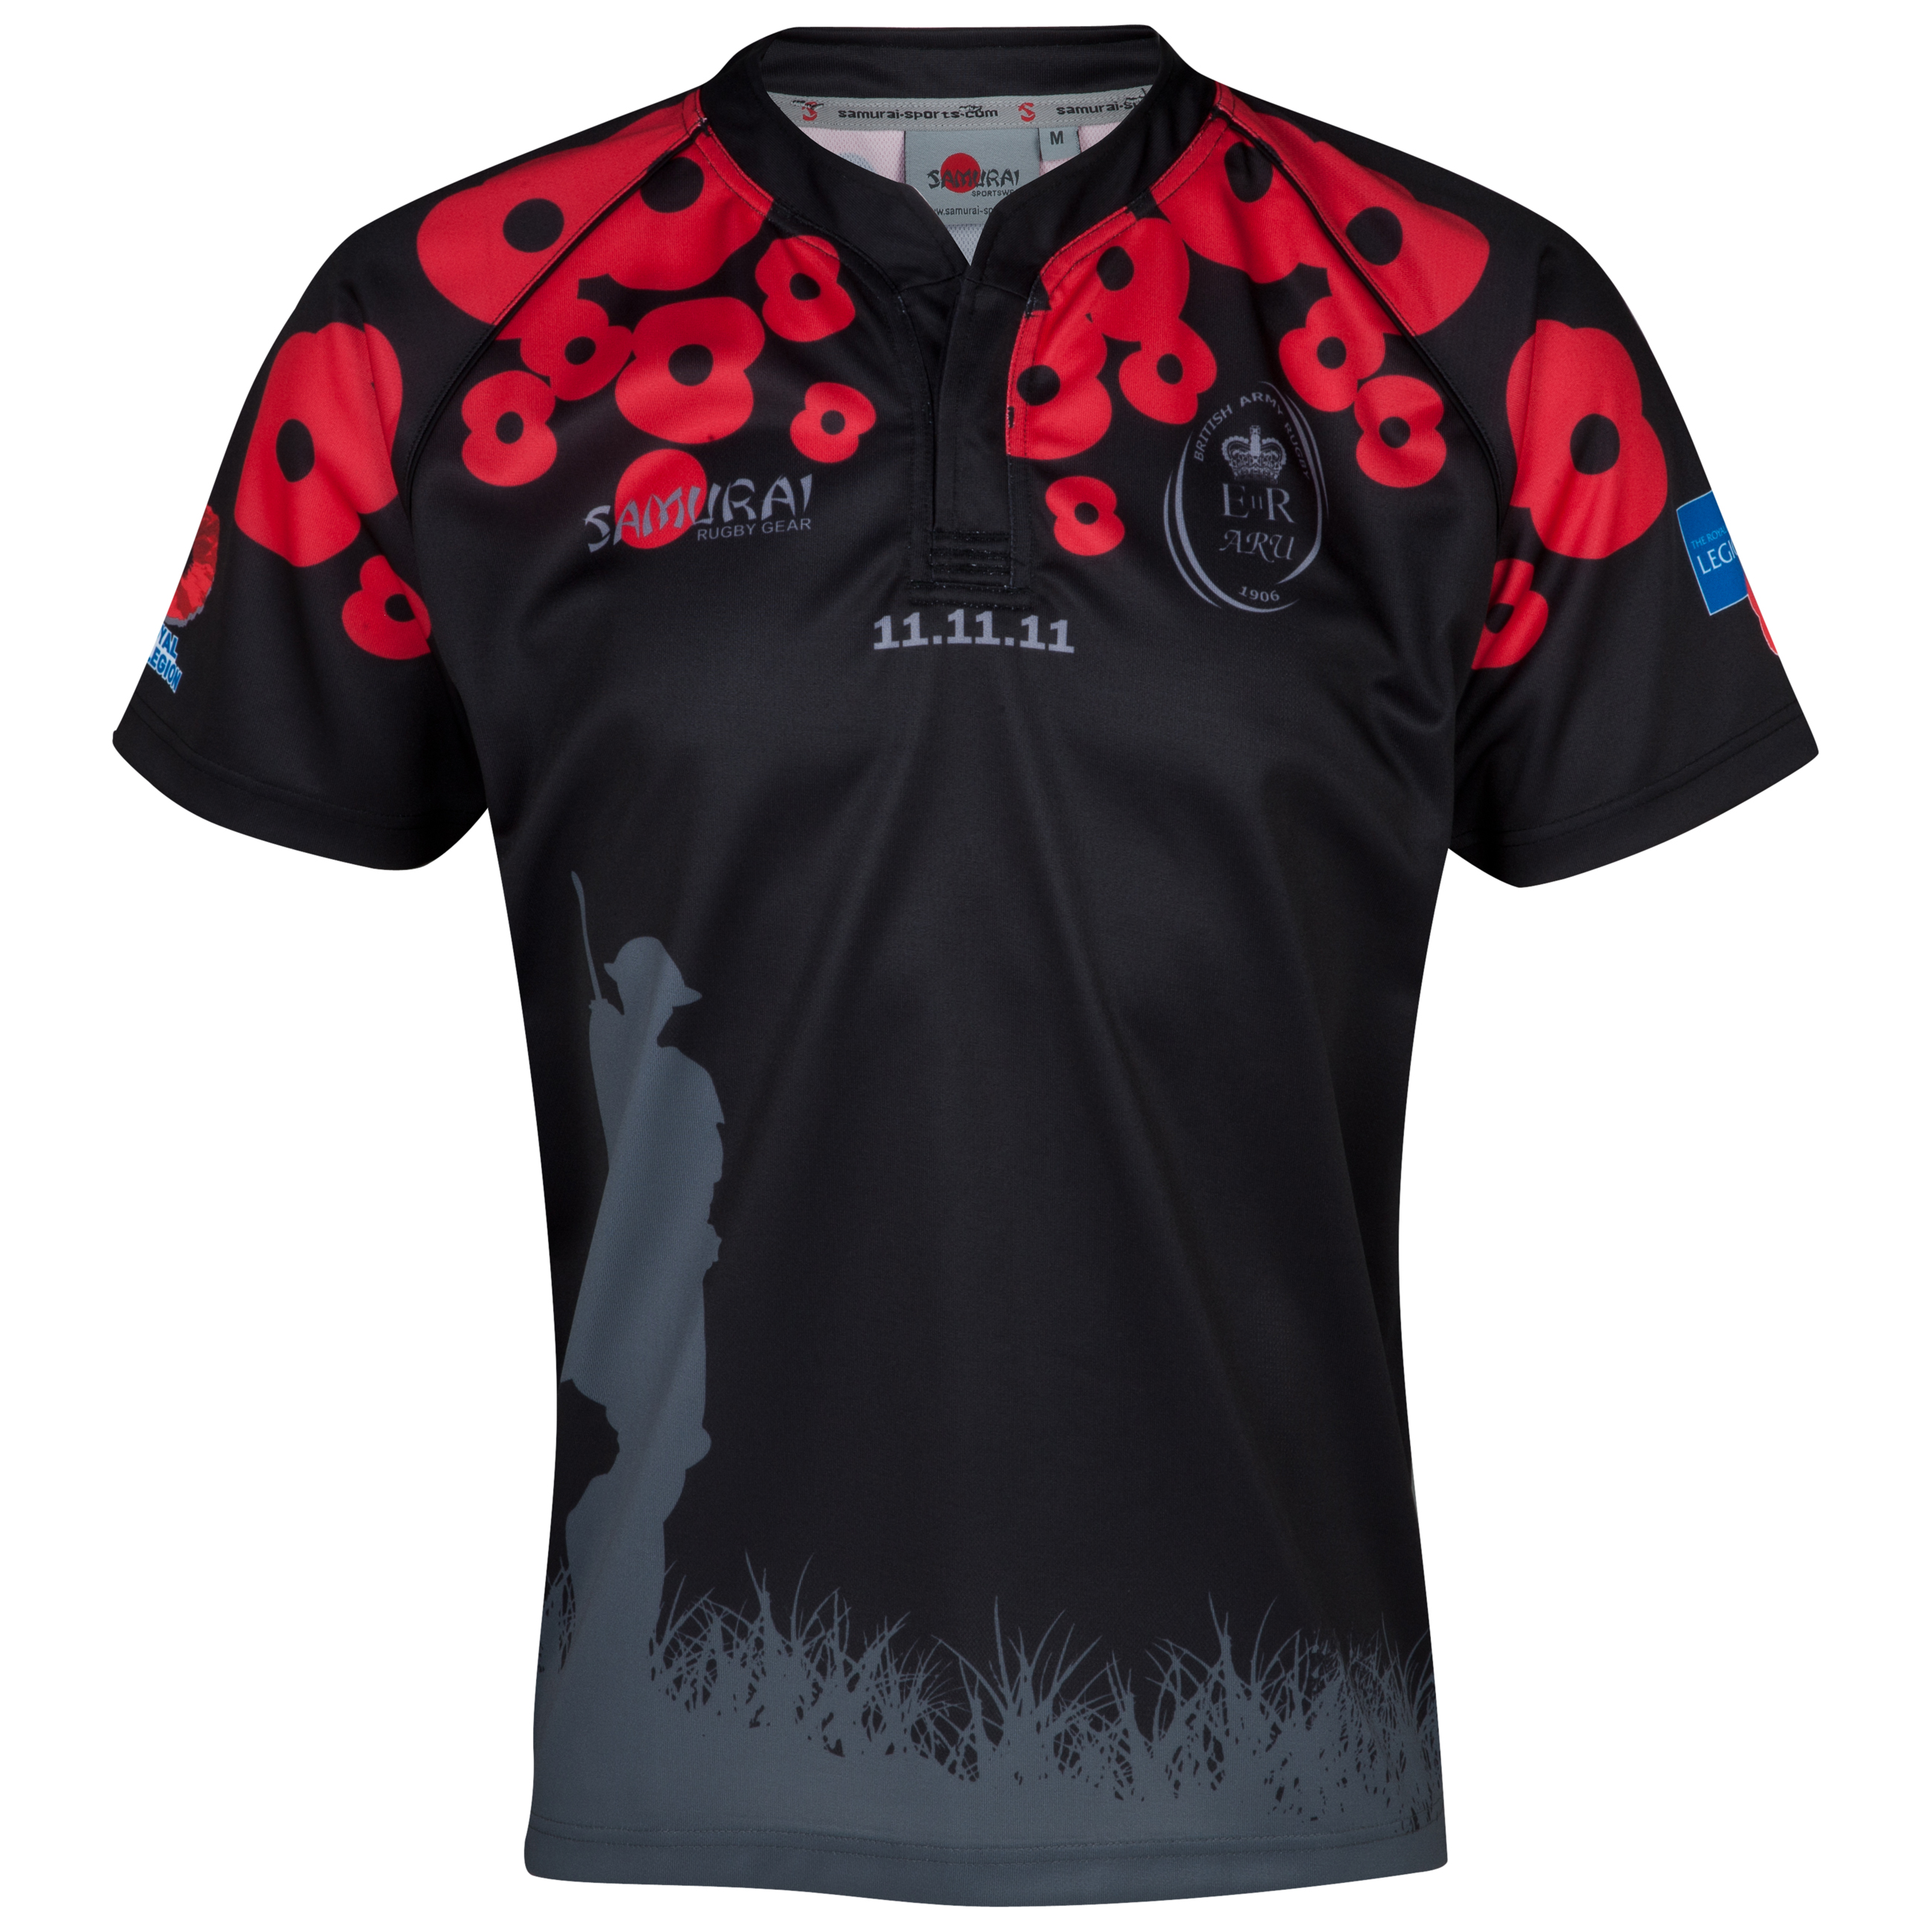 Army Rugby Union Lone Soldier Shirt